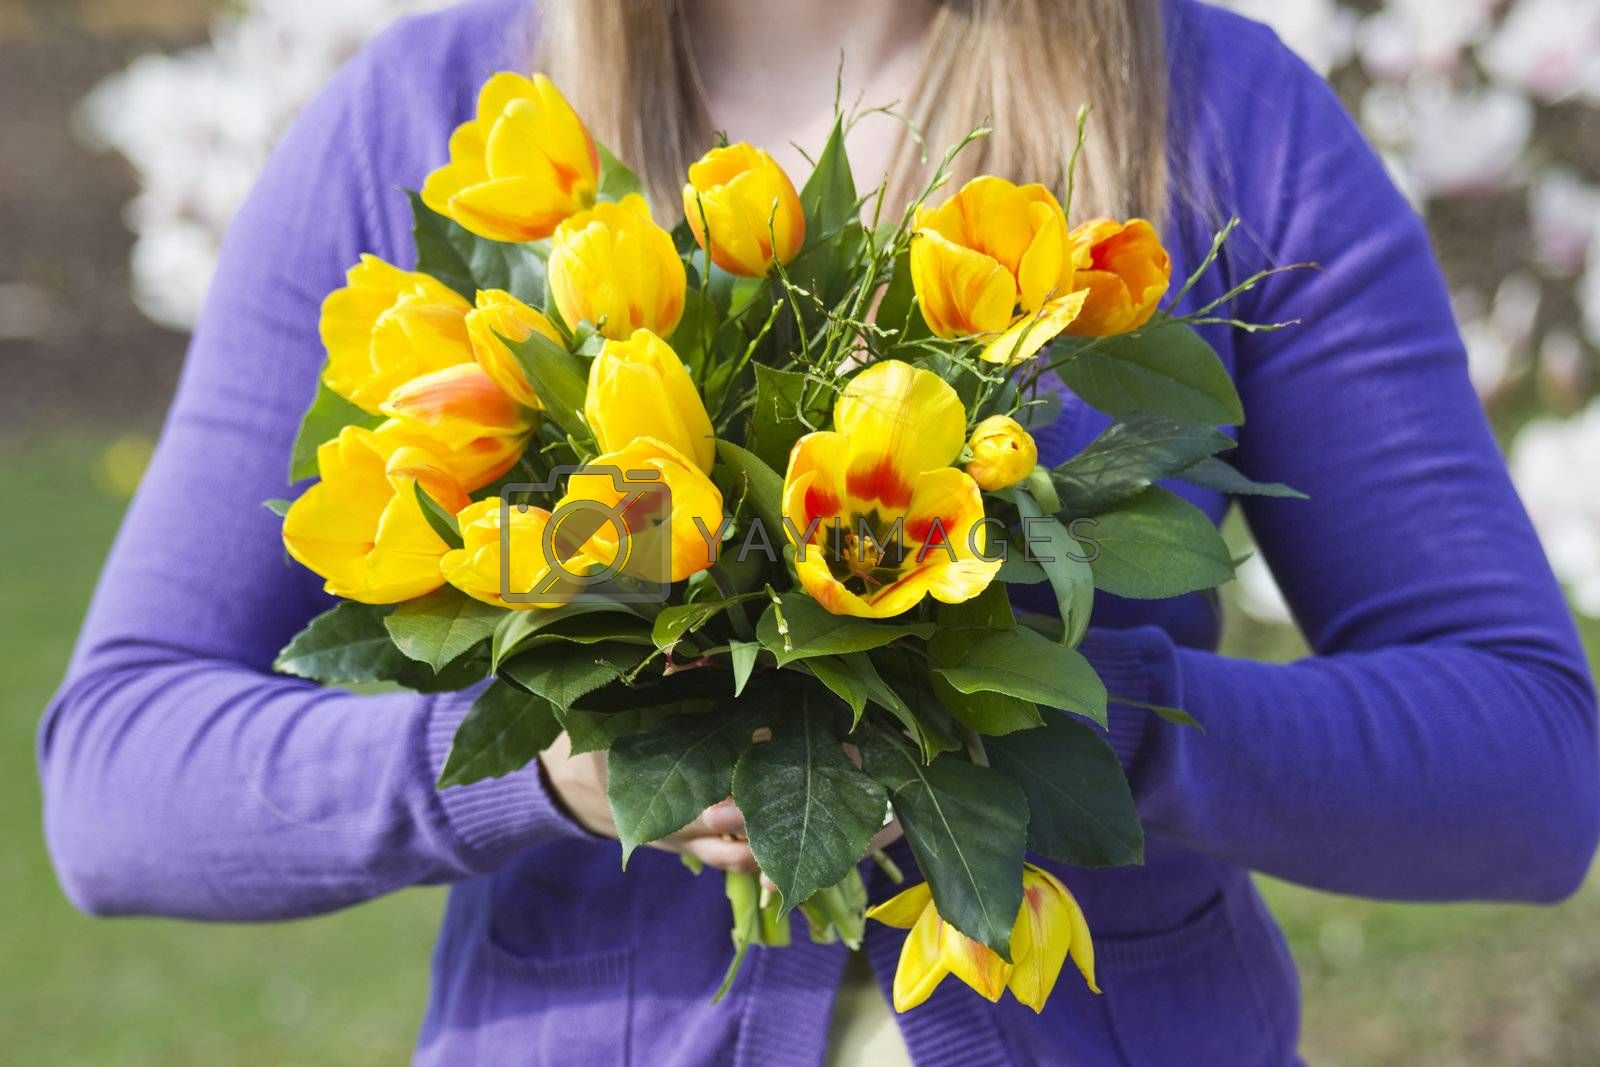 Bunch of tulips in woman's hands